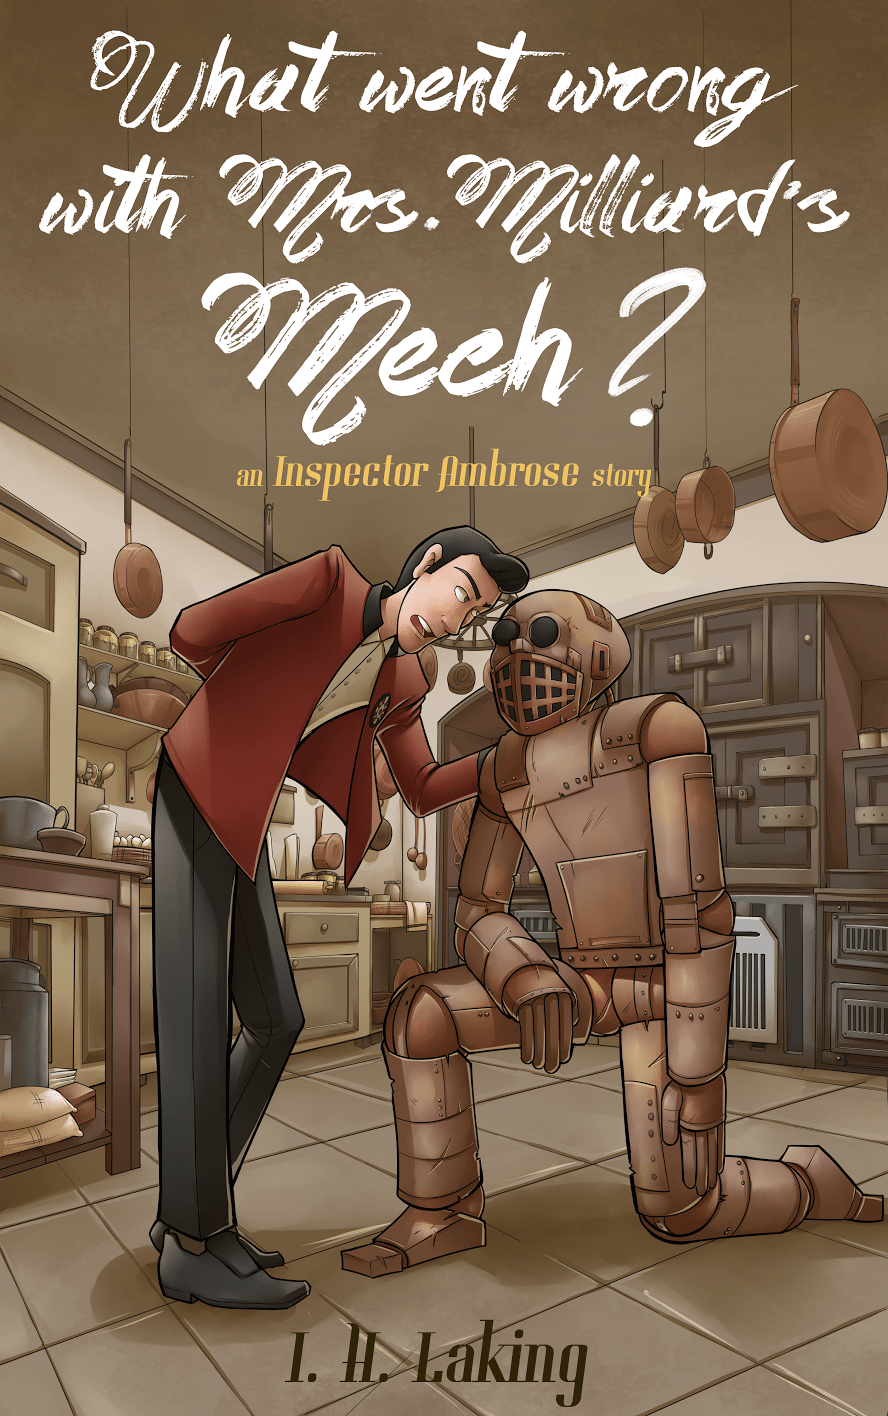 What Went Wrong with Mrs Milliards Mech by IH Laking Cover Art by Silvadoray via ArtCorgi